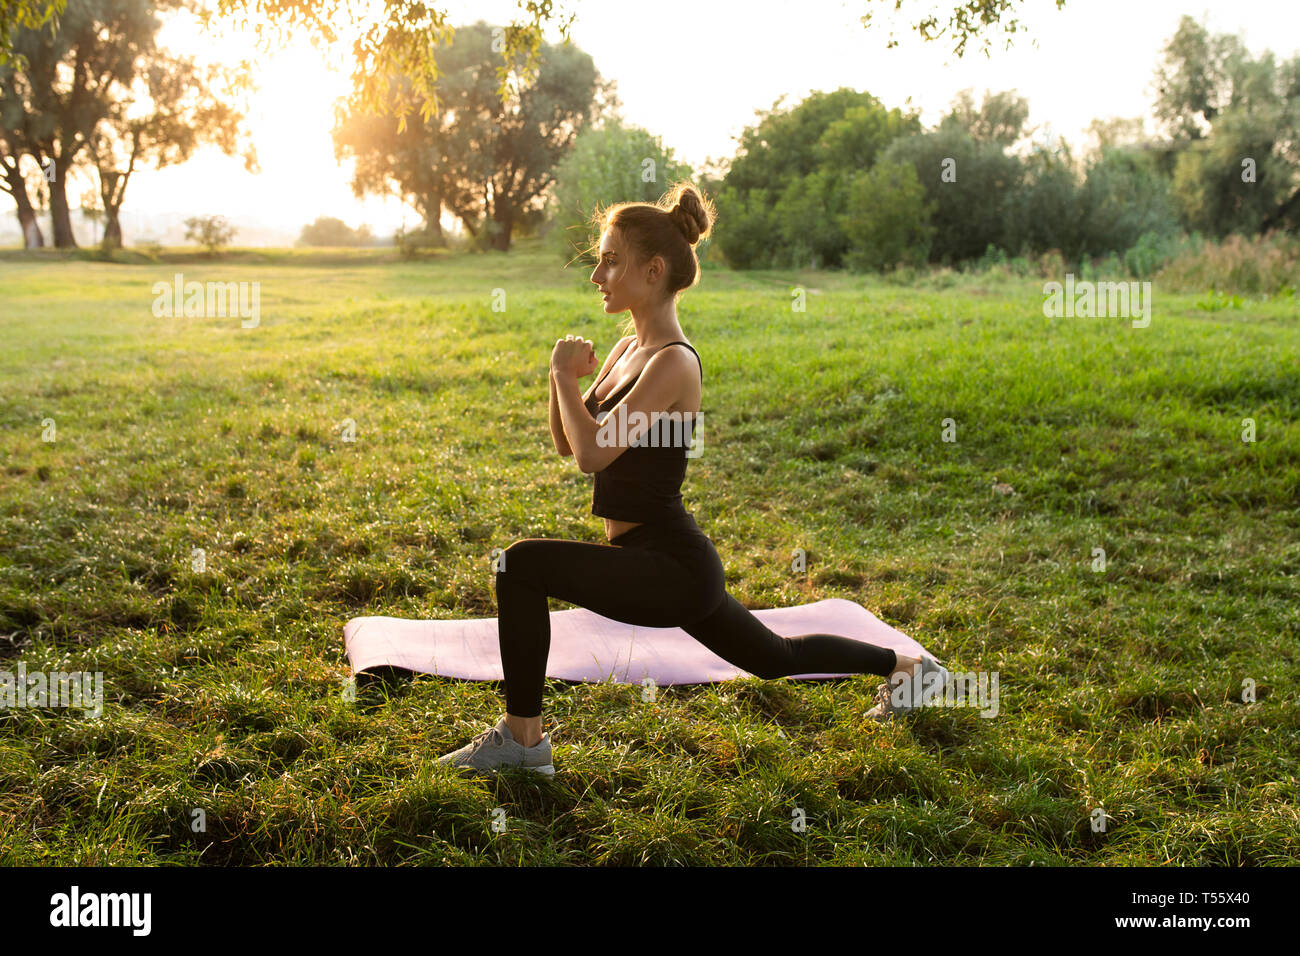 Young woman practicing yoga in park Banque D'Images